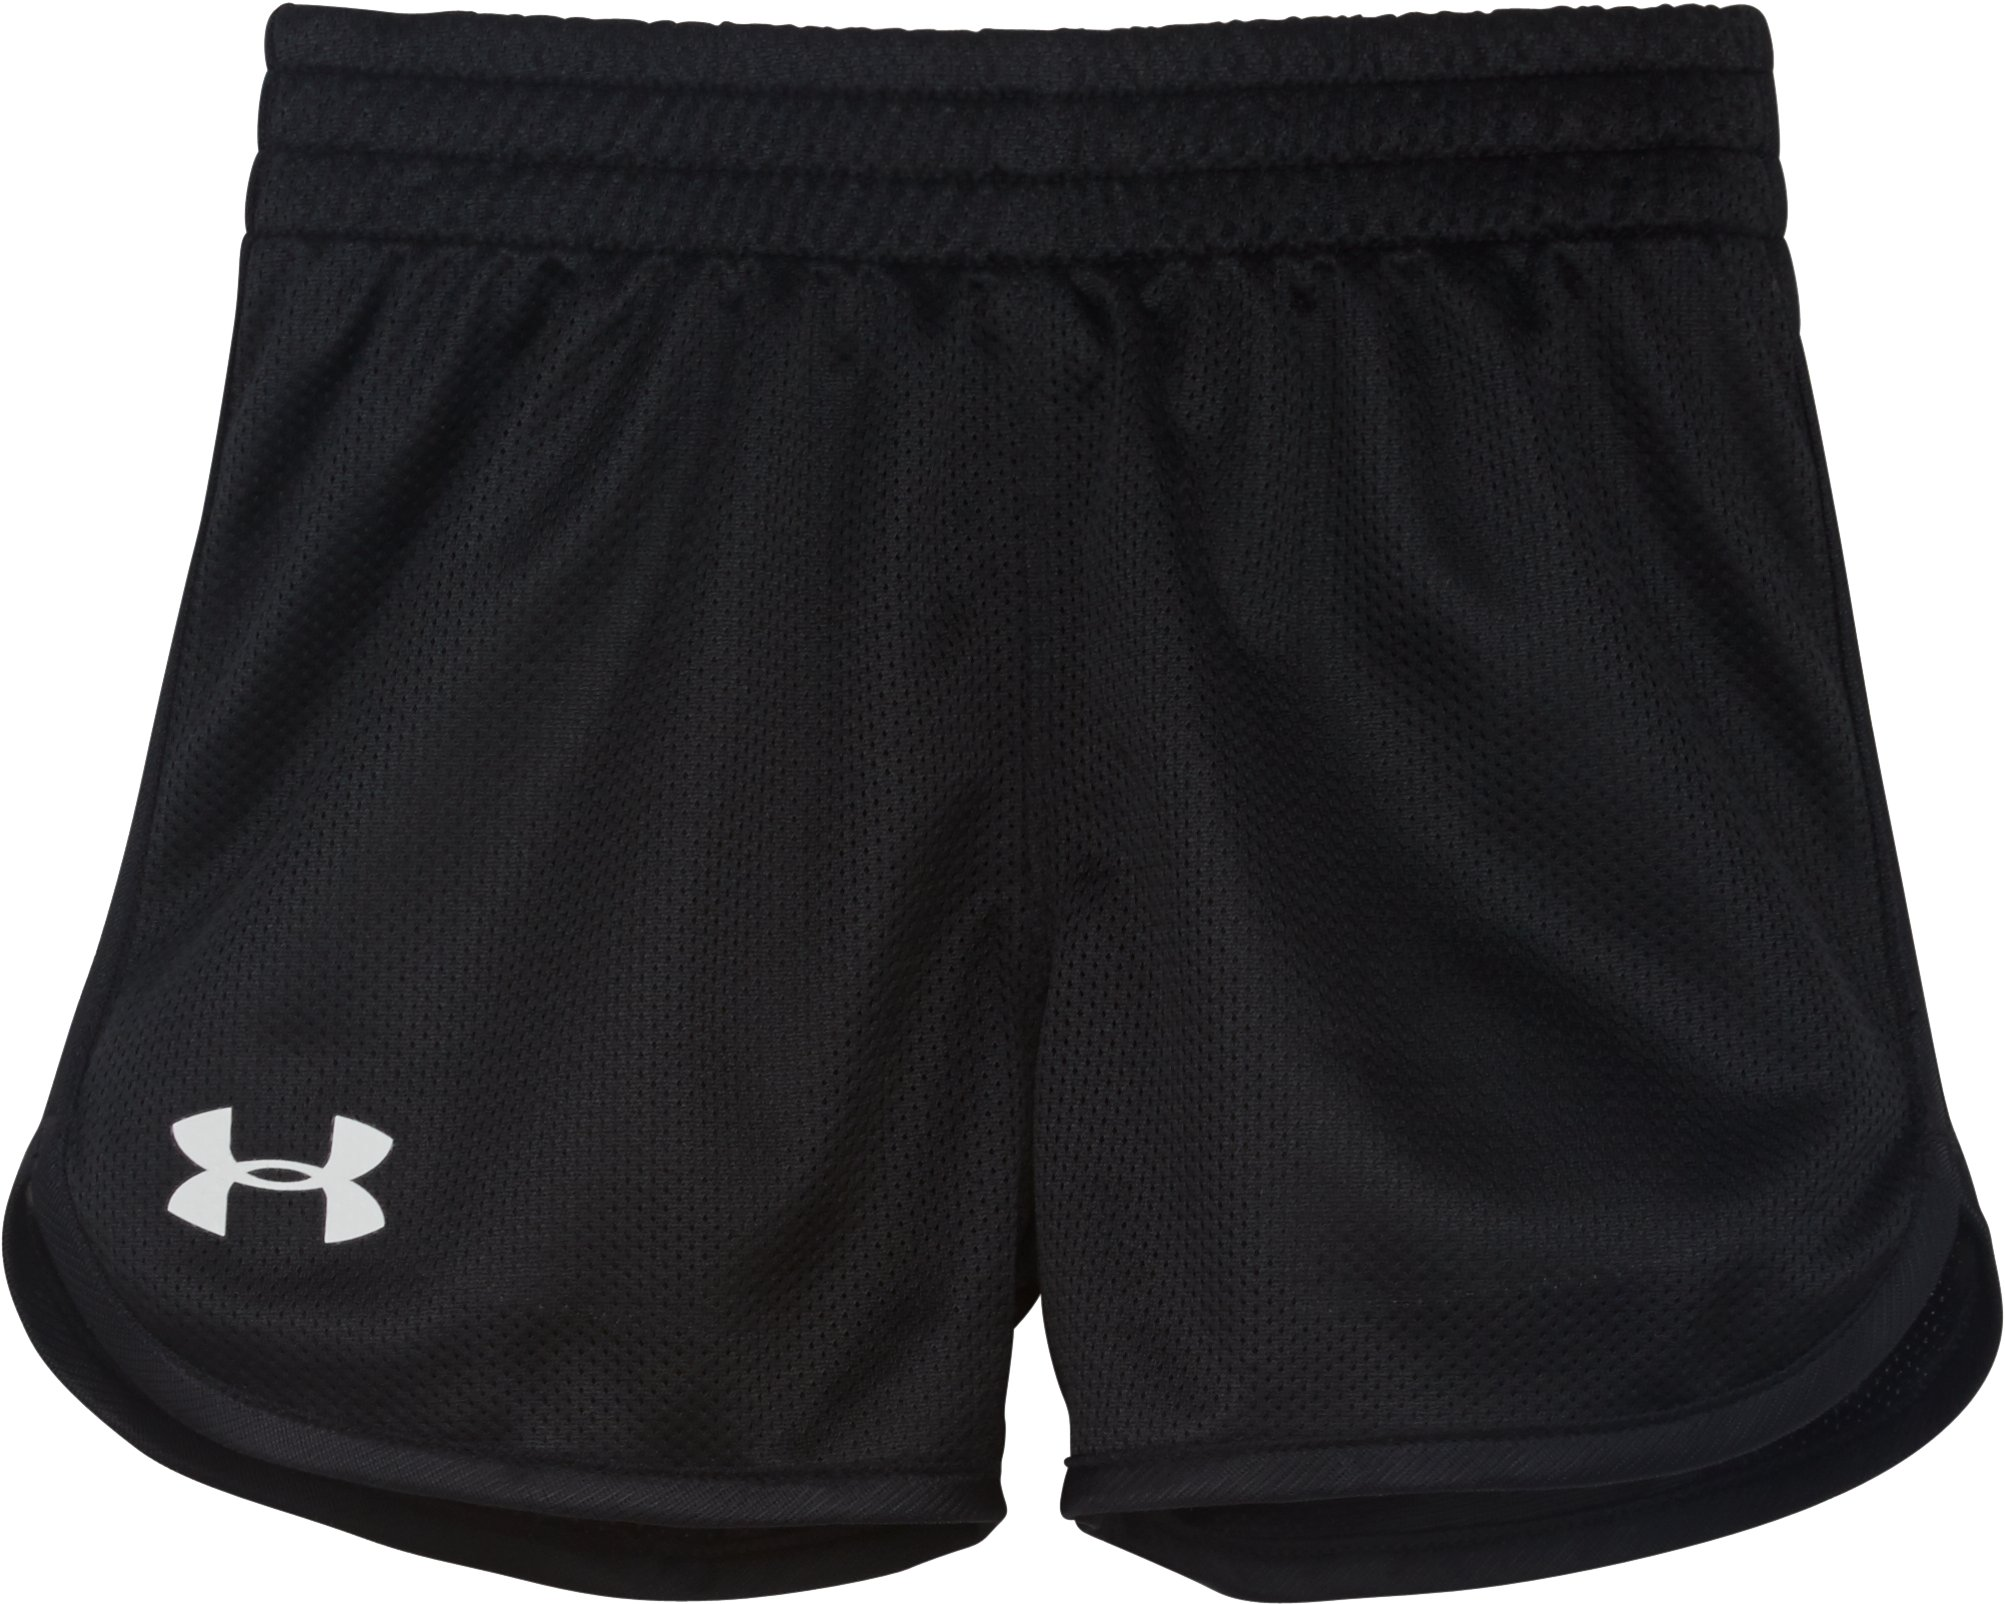 Girls' Toddler UA Essential Shorts, Black , Laydown